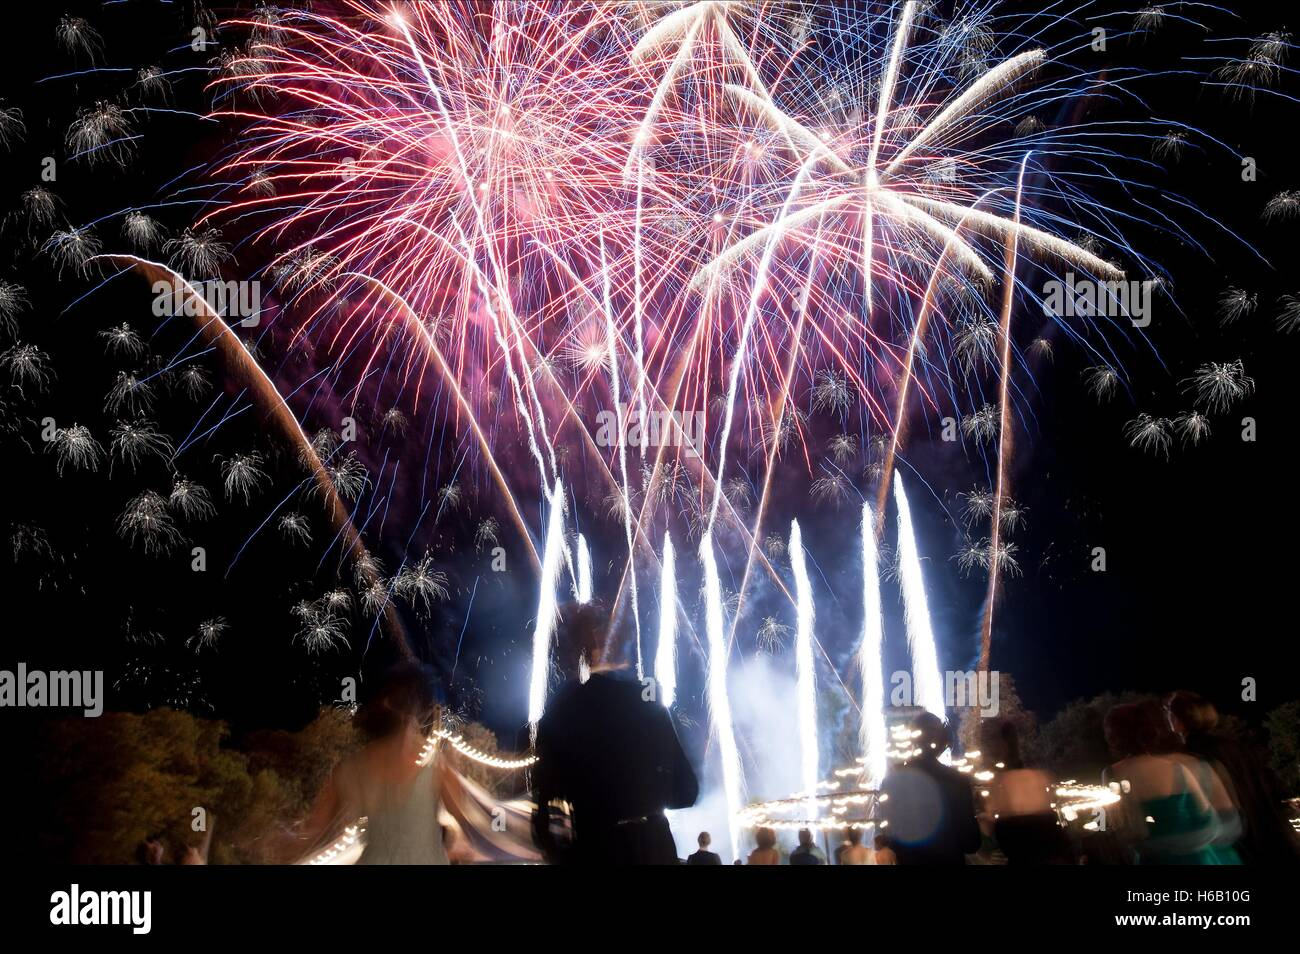 FIREWORK DISPLAY THE THEORY OF EVERYTHING (2014) - Stock Image